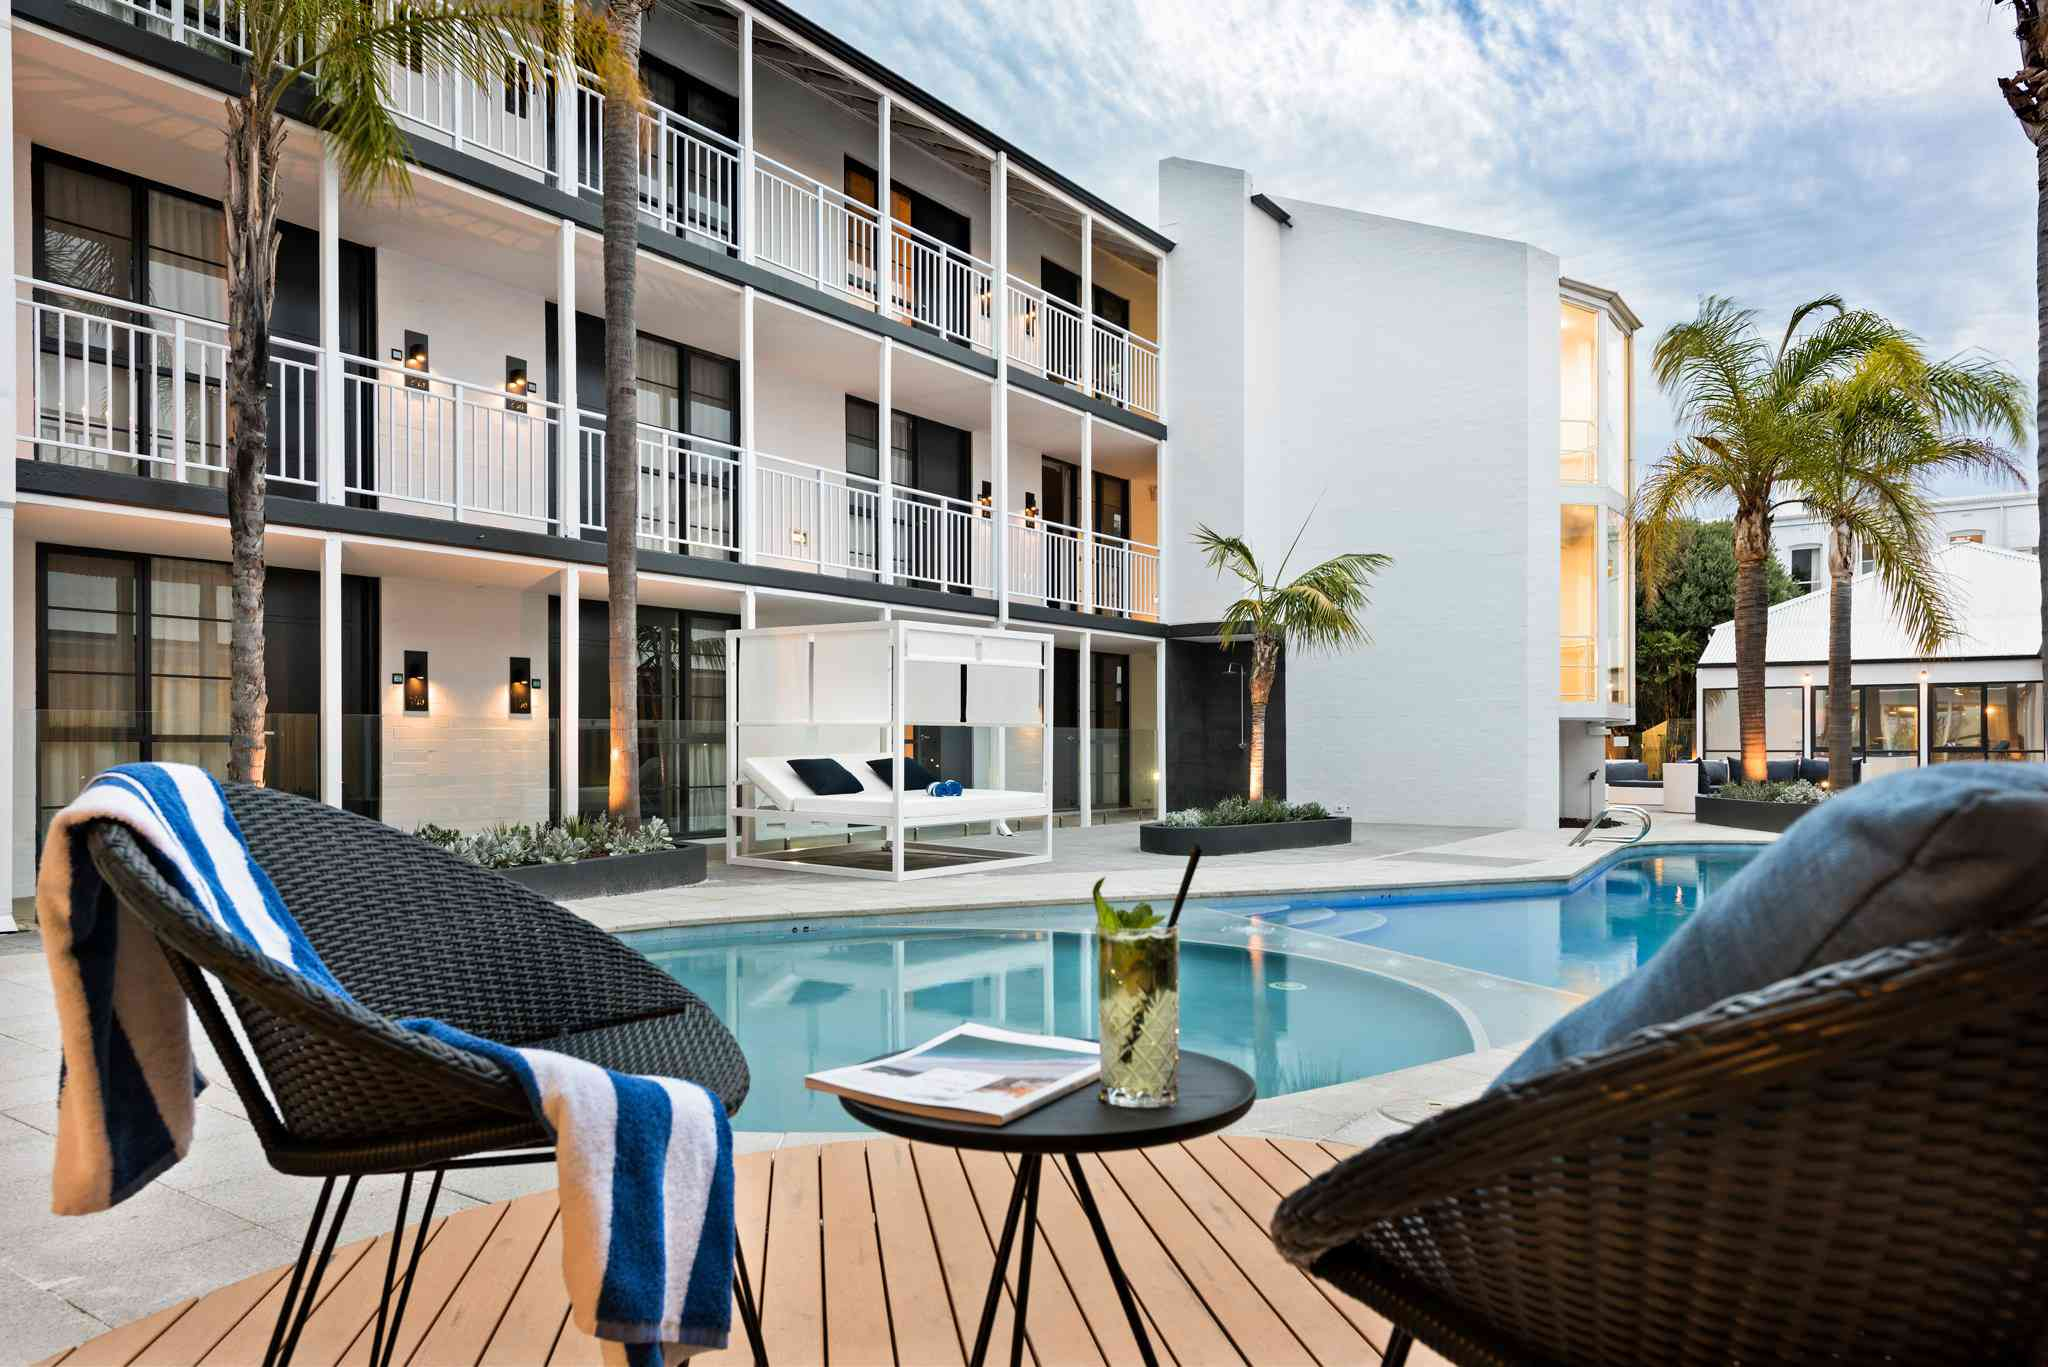 Pool area at Tradewinds Hotel